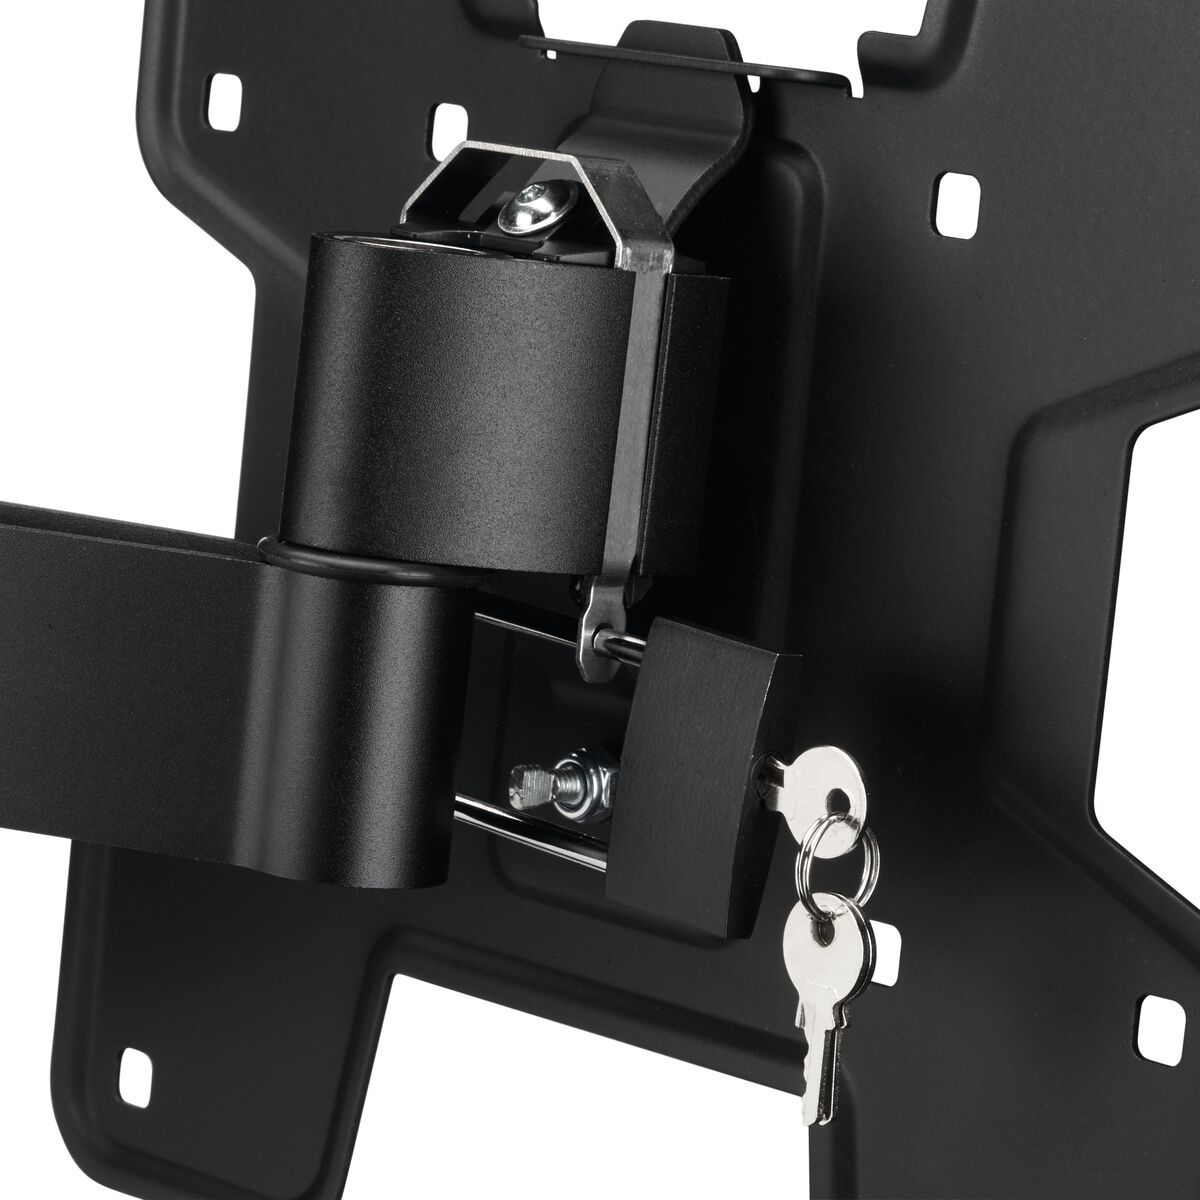 Vogel's PFW 2020 Display wall mount turn & tilt - Detail